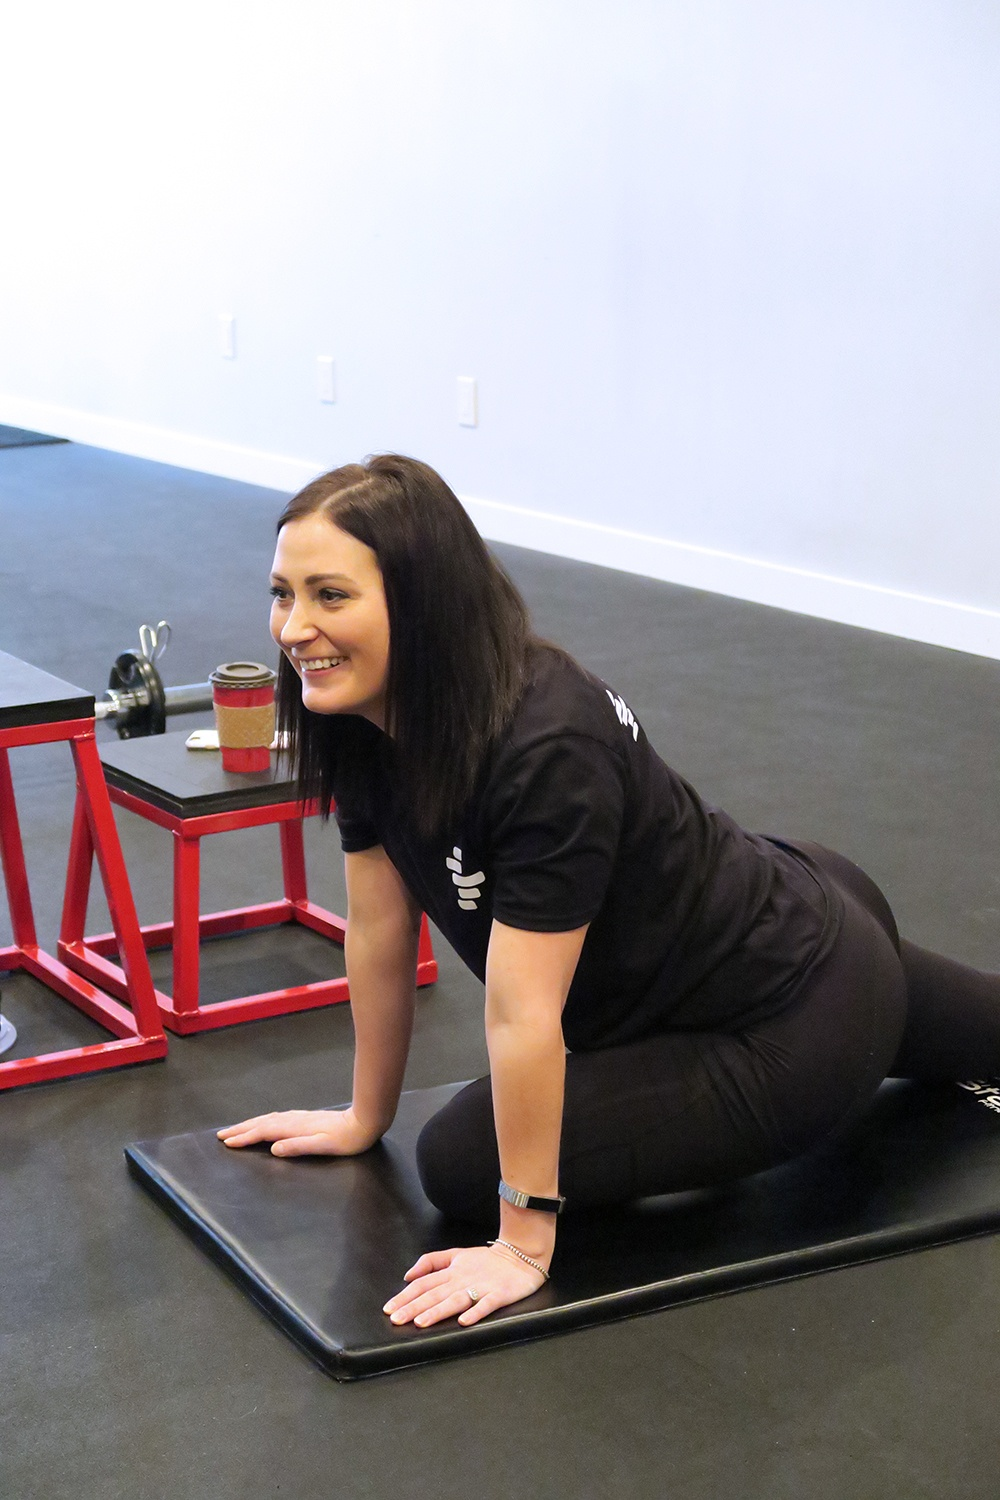 Personal Training Stretching